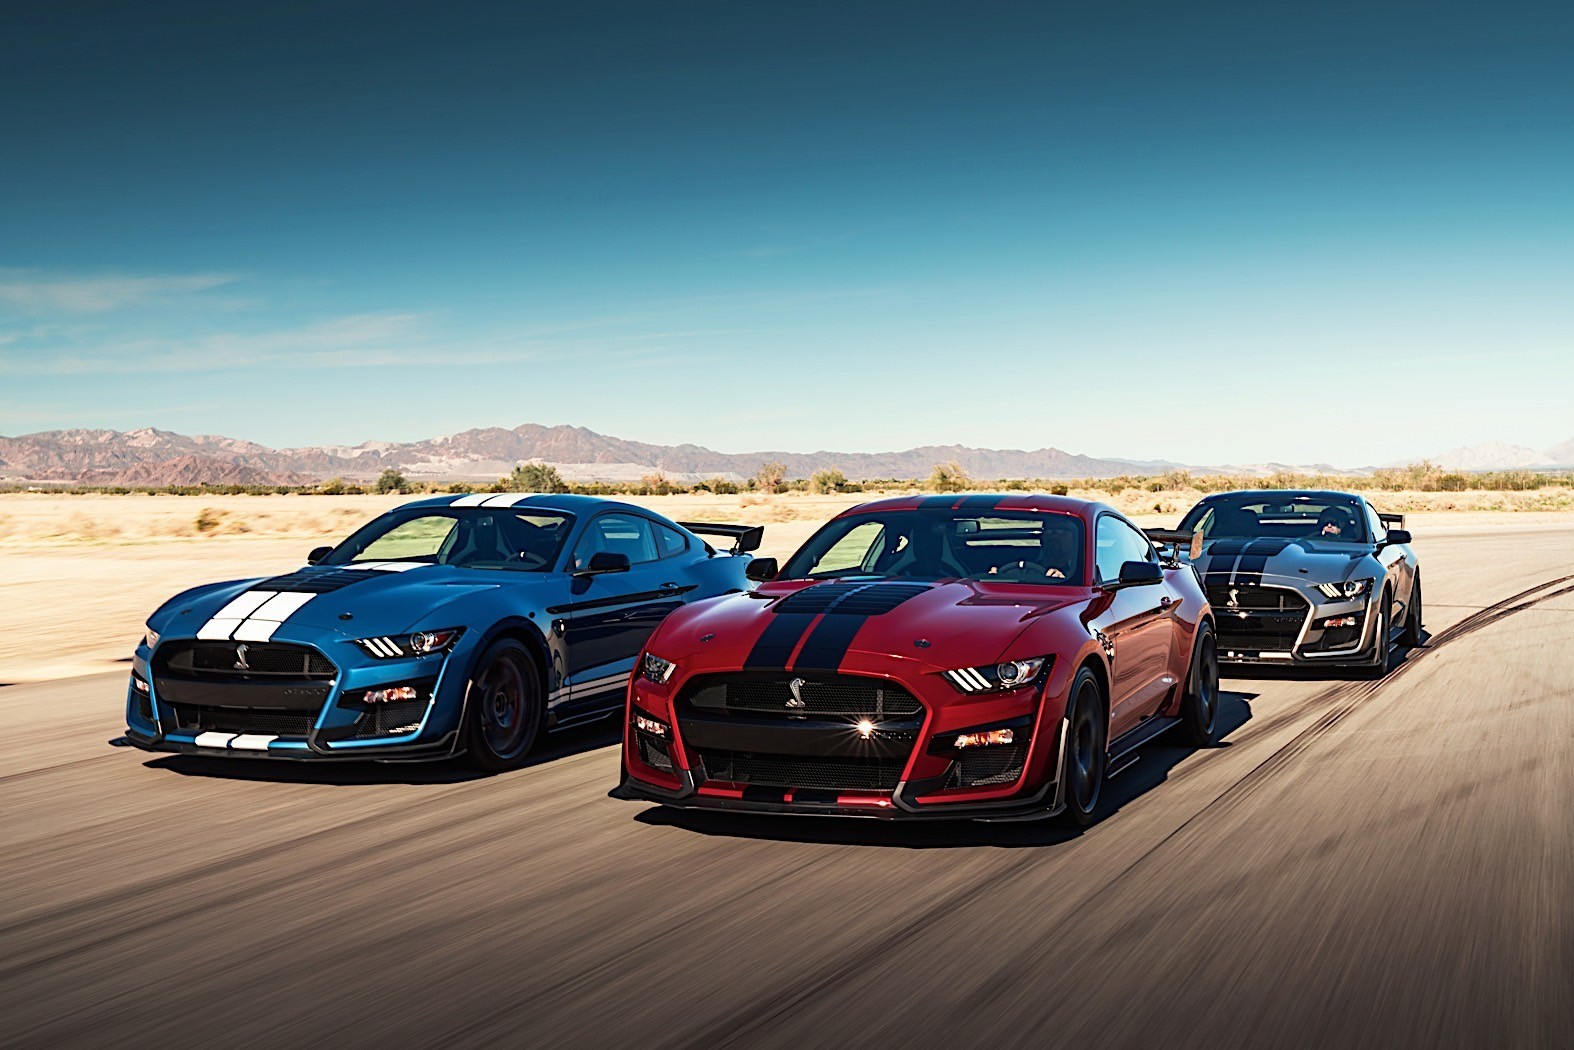 Shelby Cobra Gt500 2017 >> 2020 Mustang Shelby GT500 Review - autoevolution